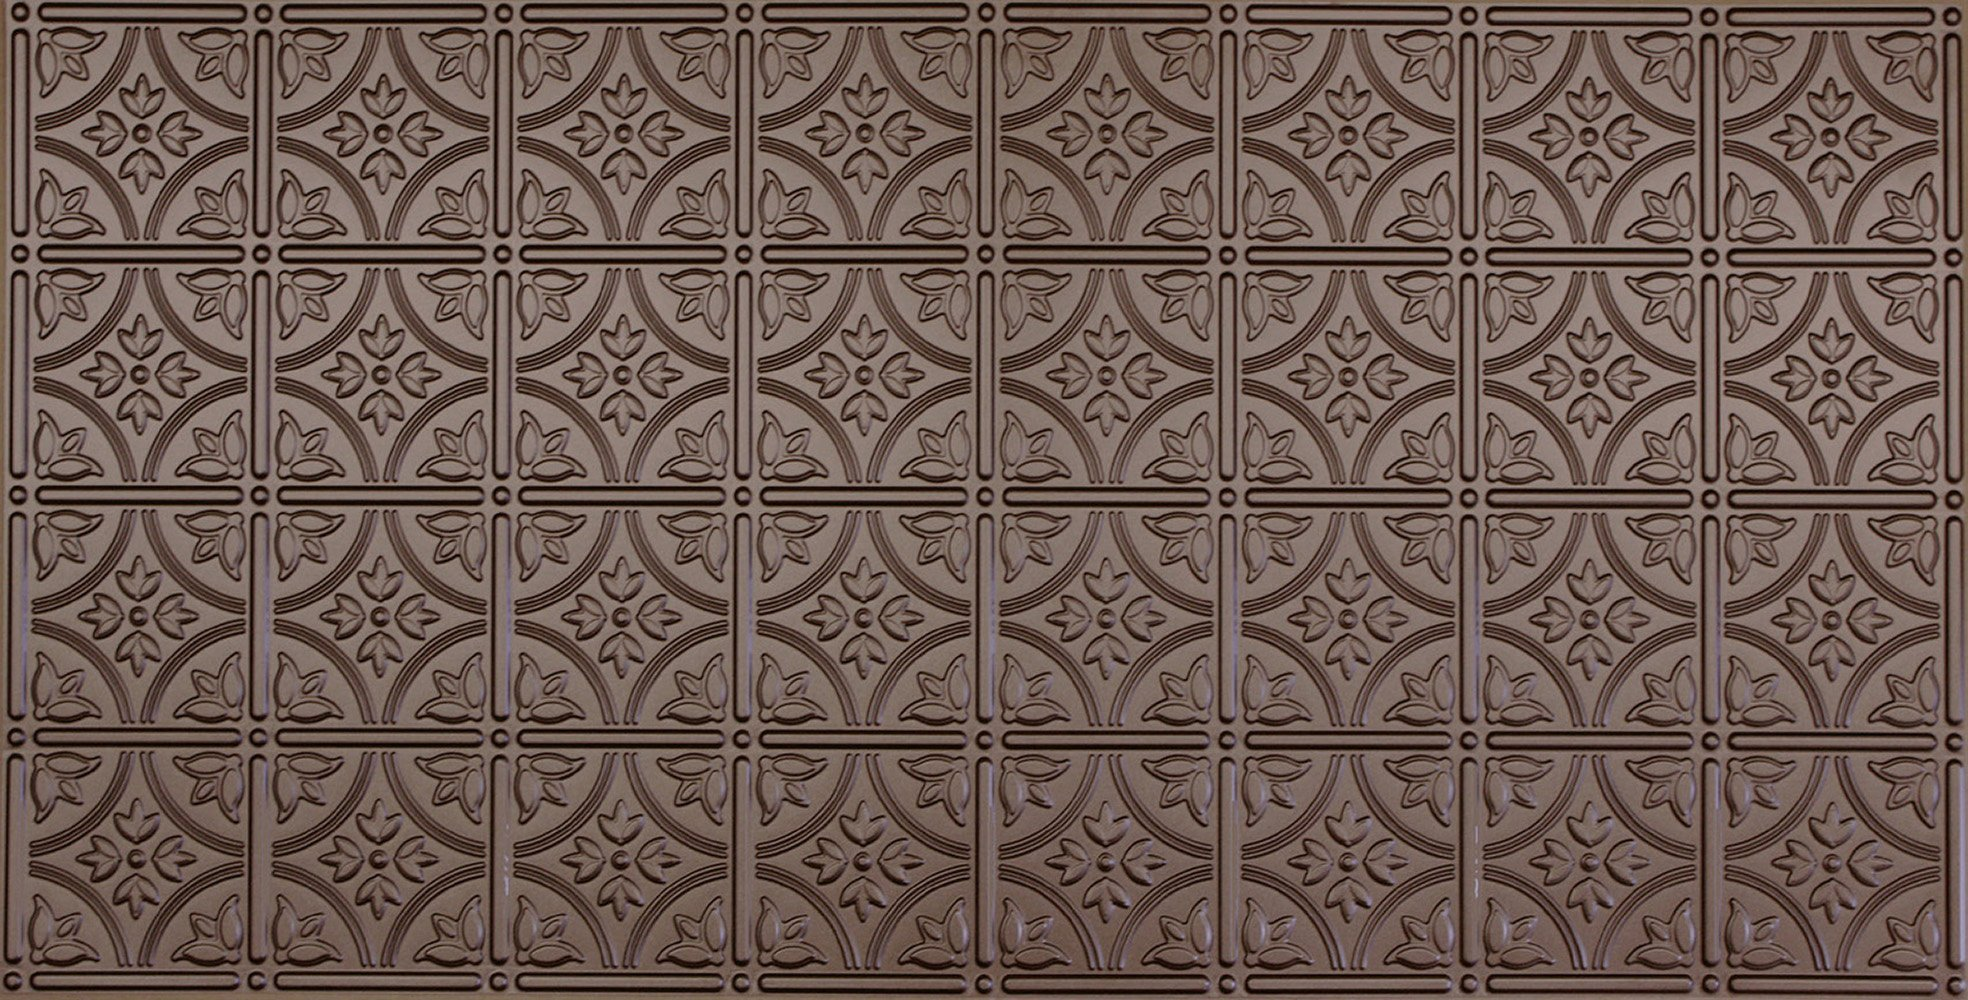 Global Specialty Products 209-03 Traditional Tin Style Panels For Glue-Up Installation, Metallic Bronze by Global Specialties